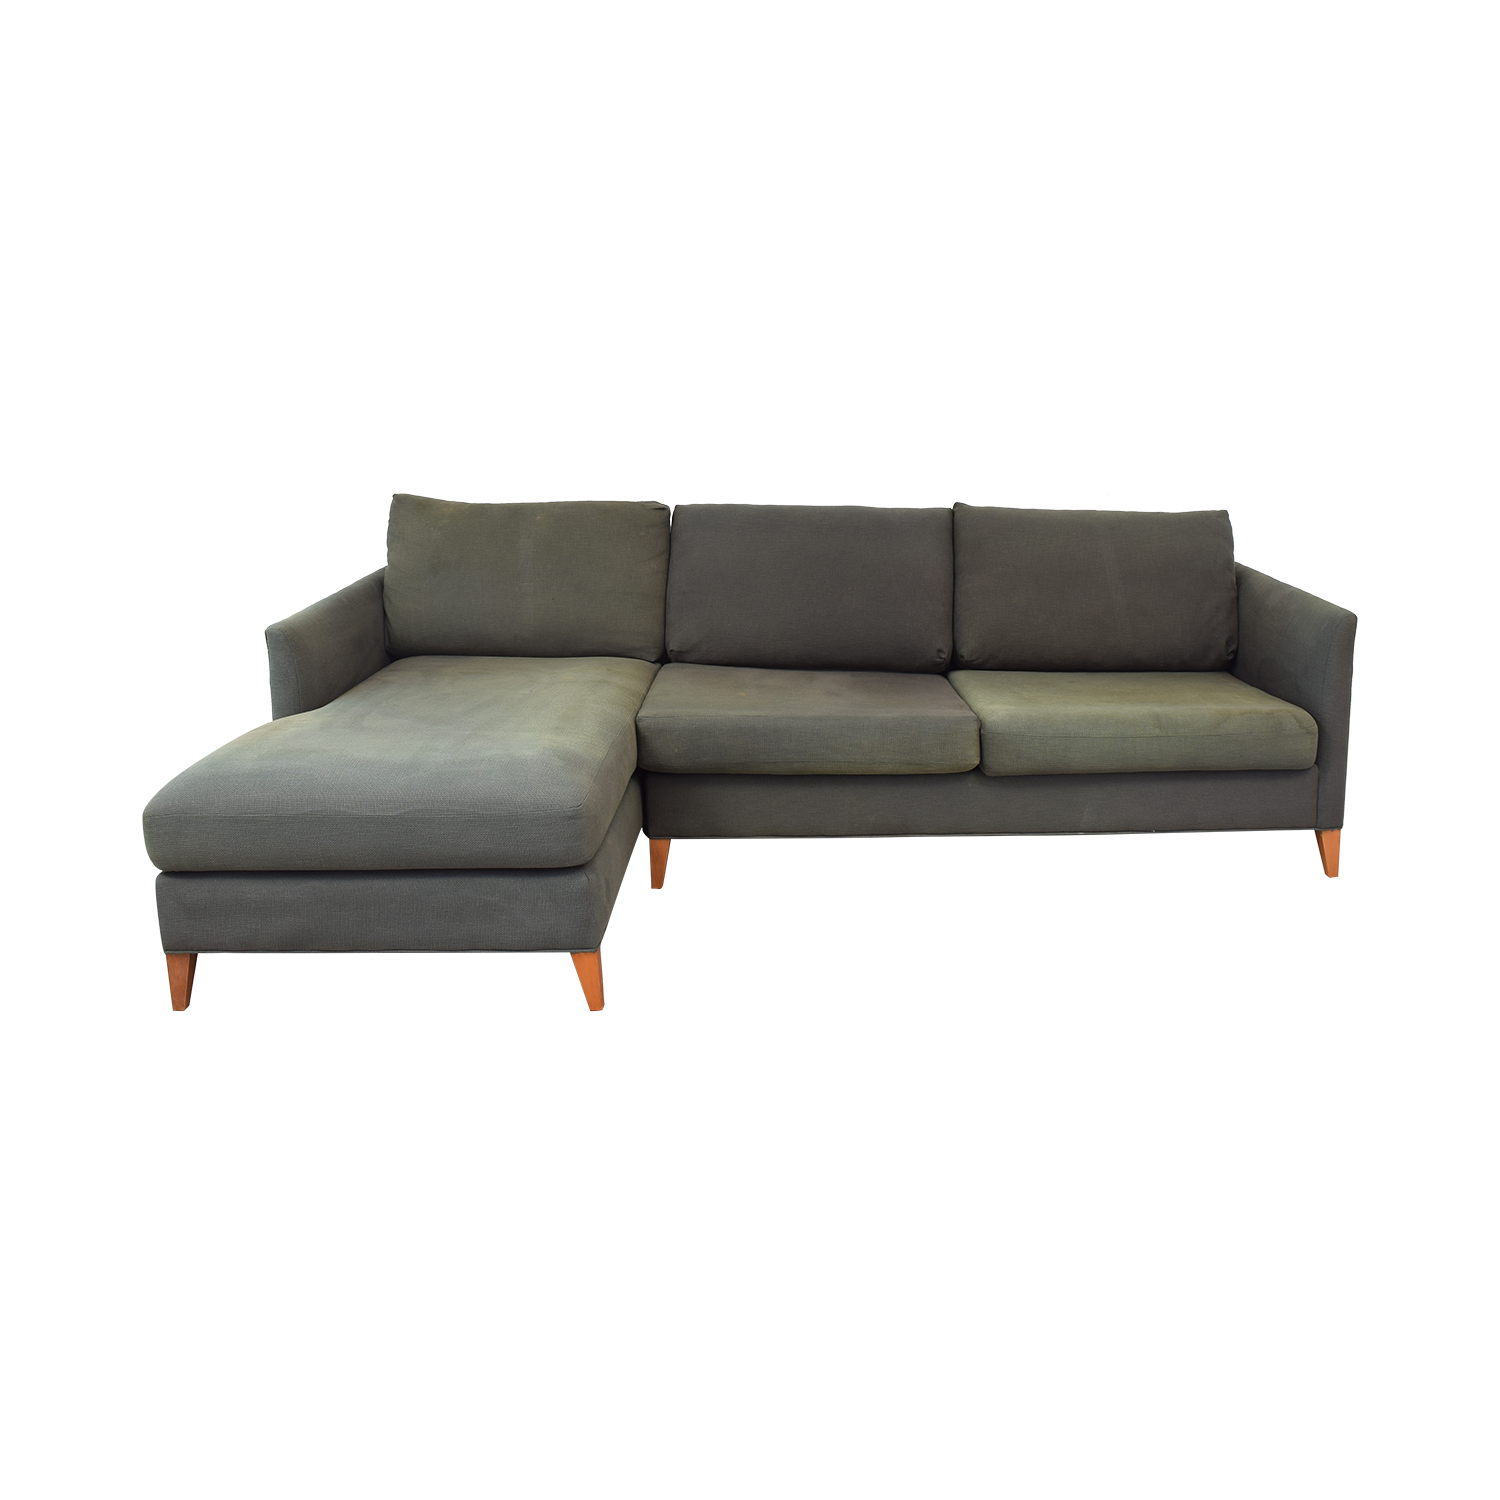 shop Crate & Barrel Two Piece Sectional with Chaise Crate & Barrel Sectionals